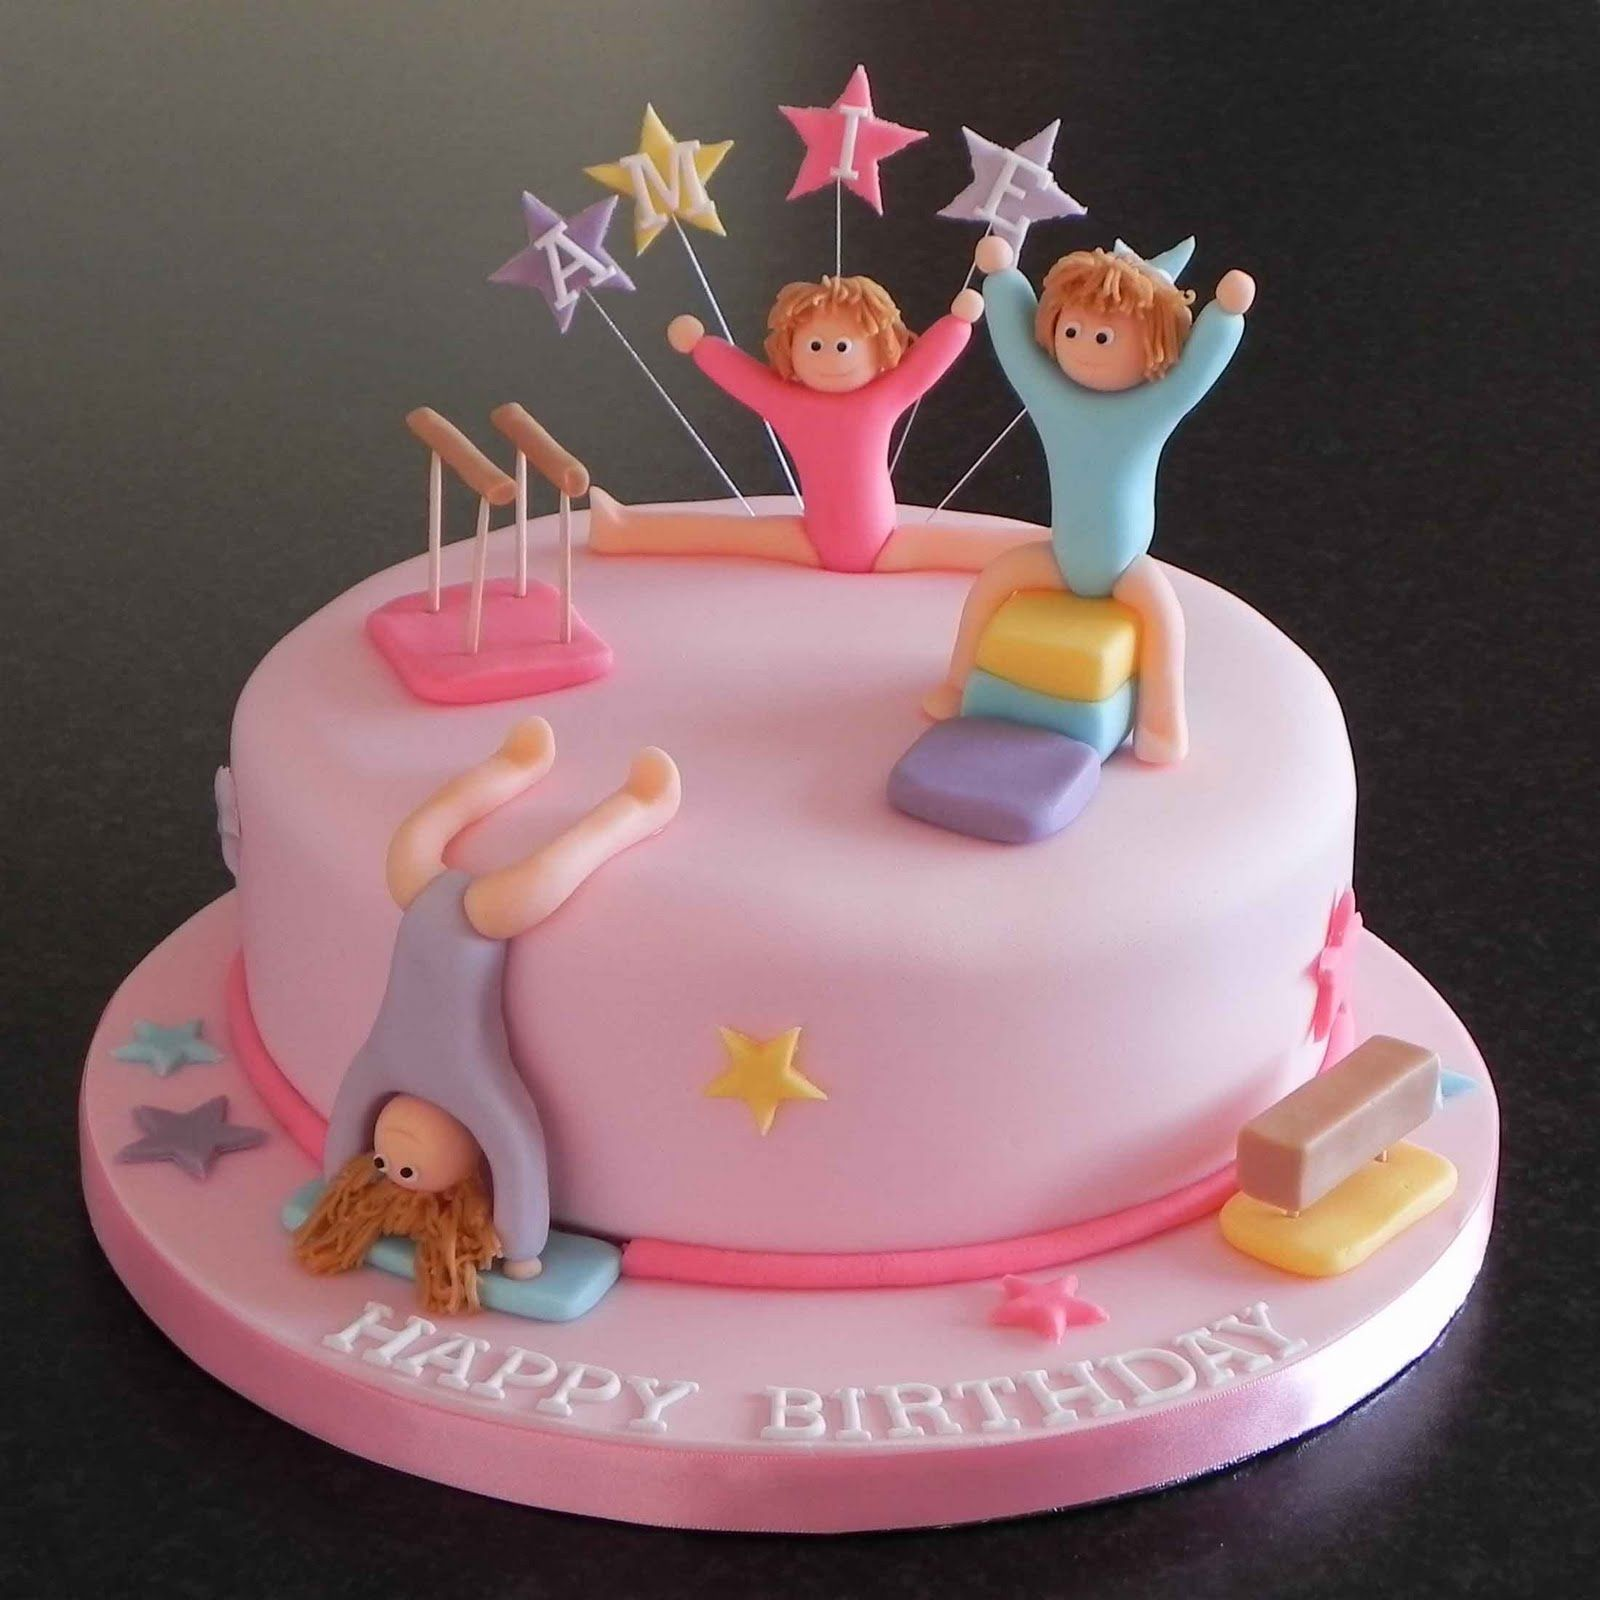 Tremendous Gymnastic Themed Birthday Cake Is It Not Adorable Gymnastics Personalised Birthday Cards Paralily Jamesorg